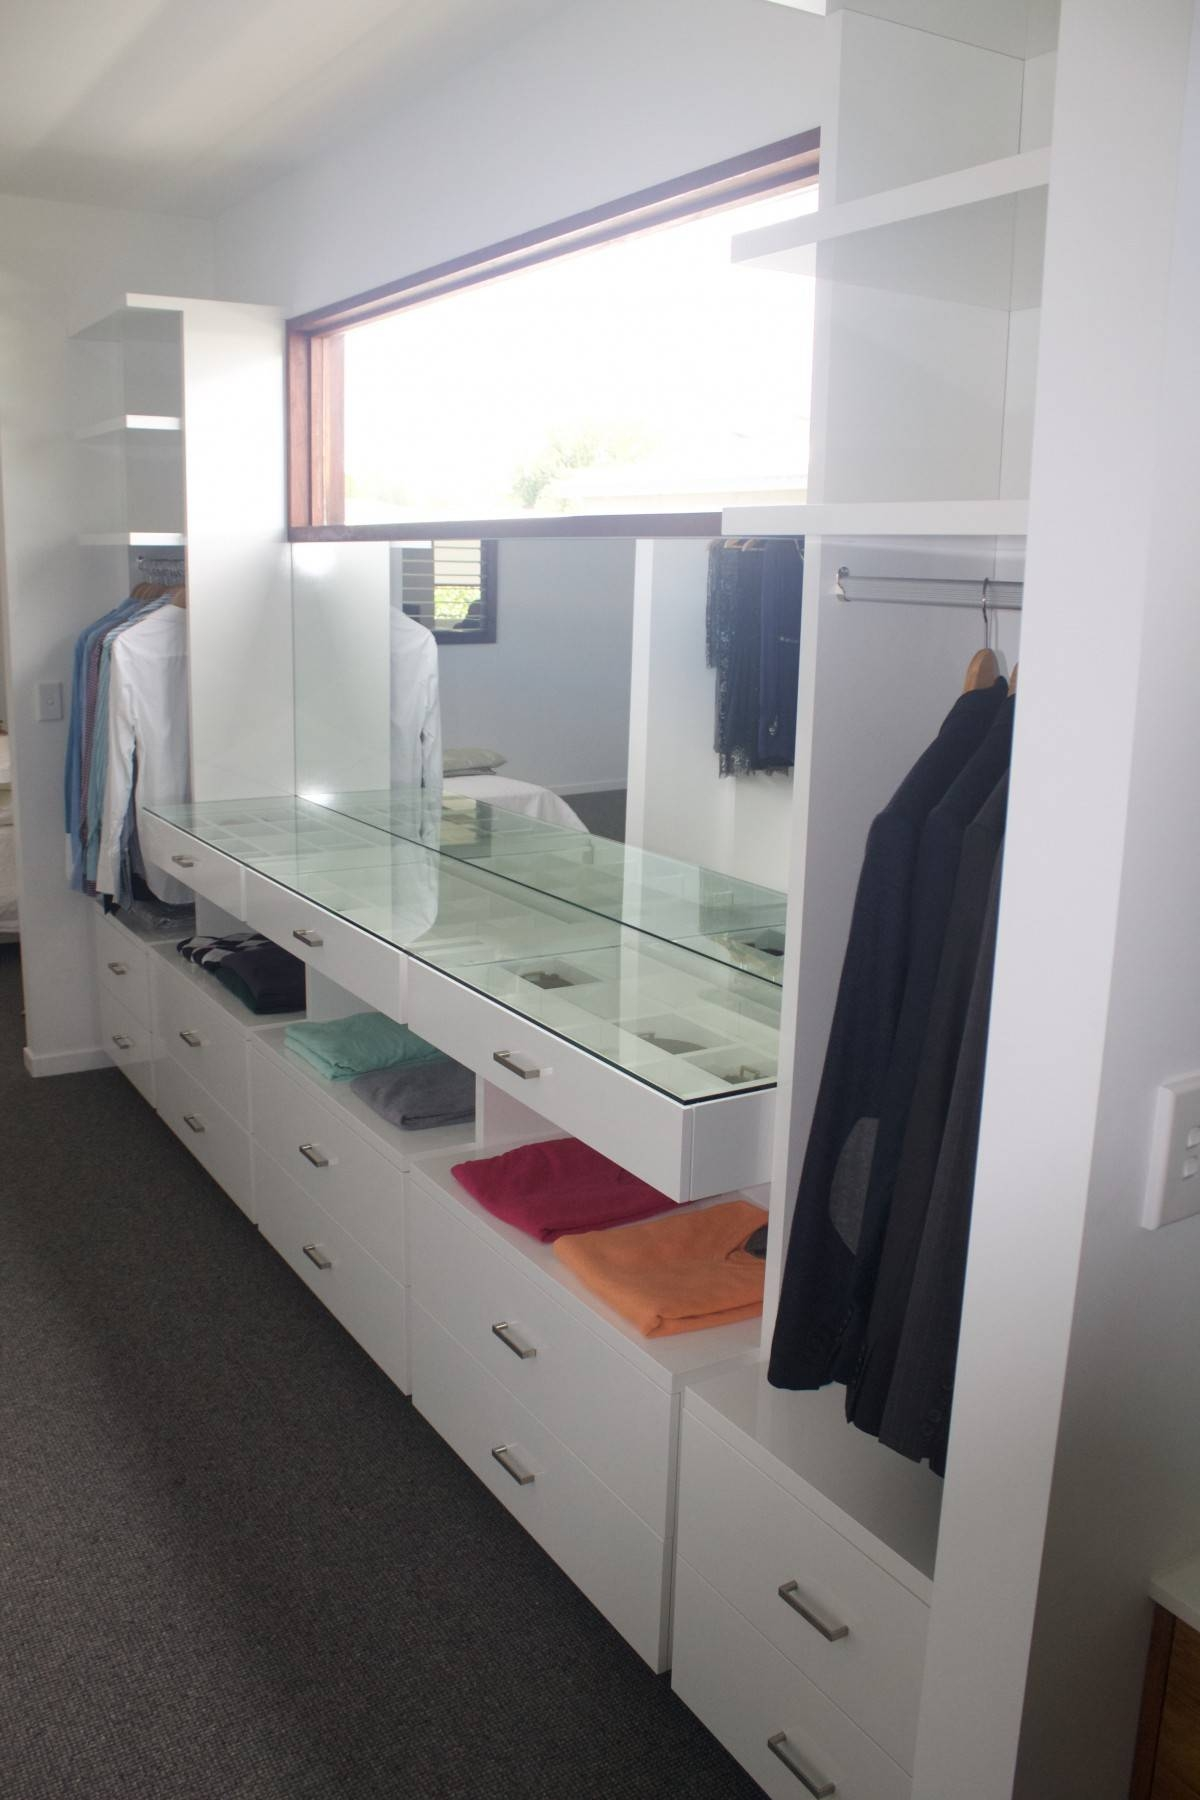 Signature Wardrobes – Just Wardrobes & Storage Intended For Signature Wardrobes (View 10 of 15)